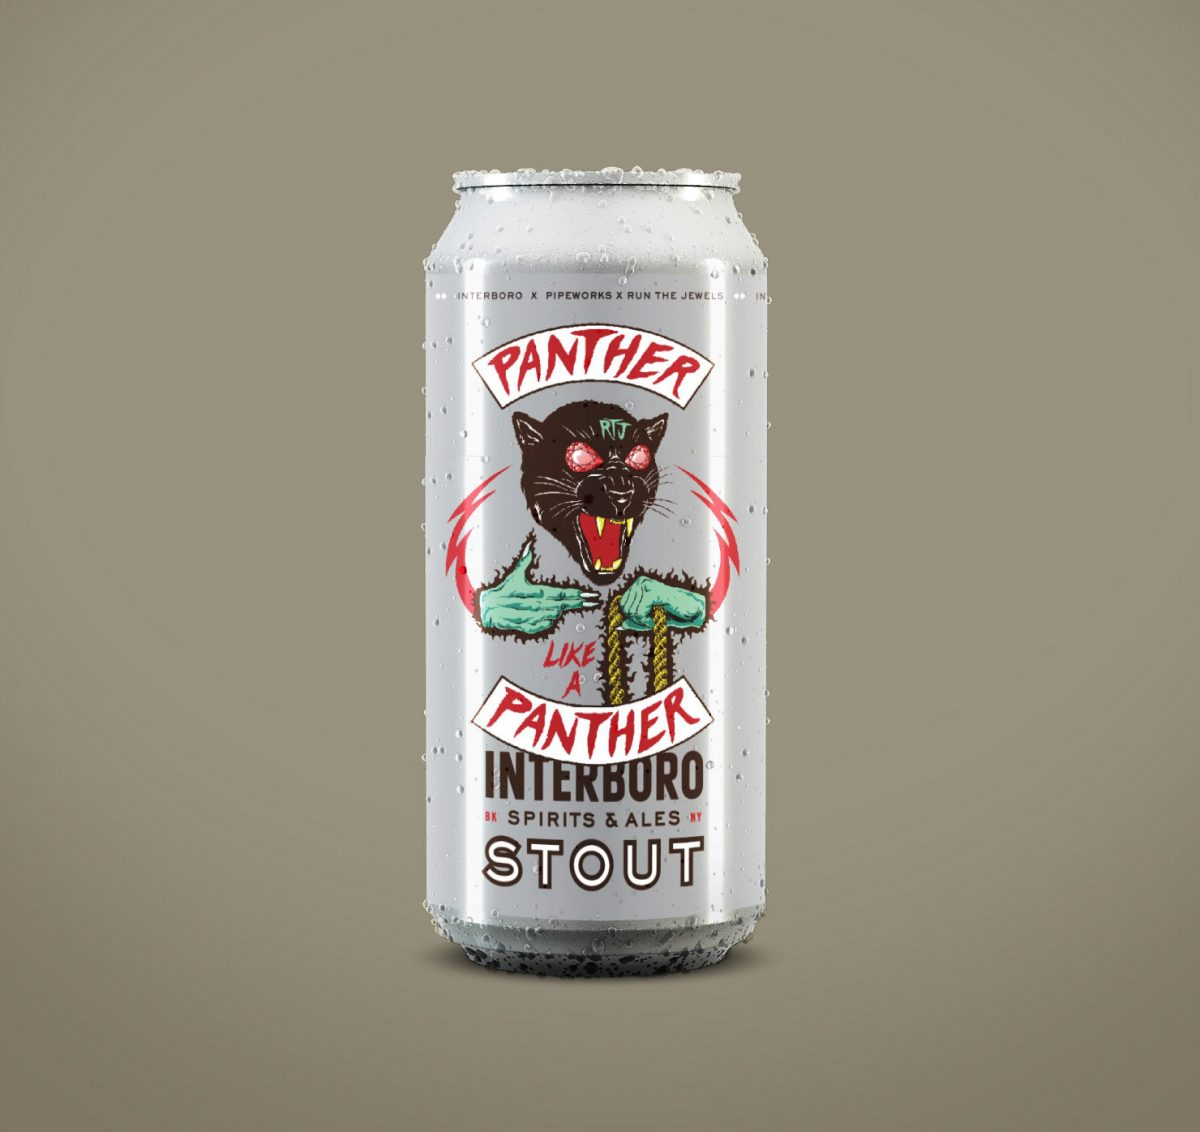 Panther Like a Panther hip hop beers